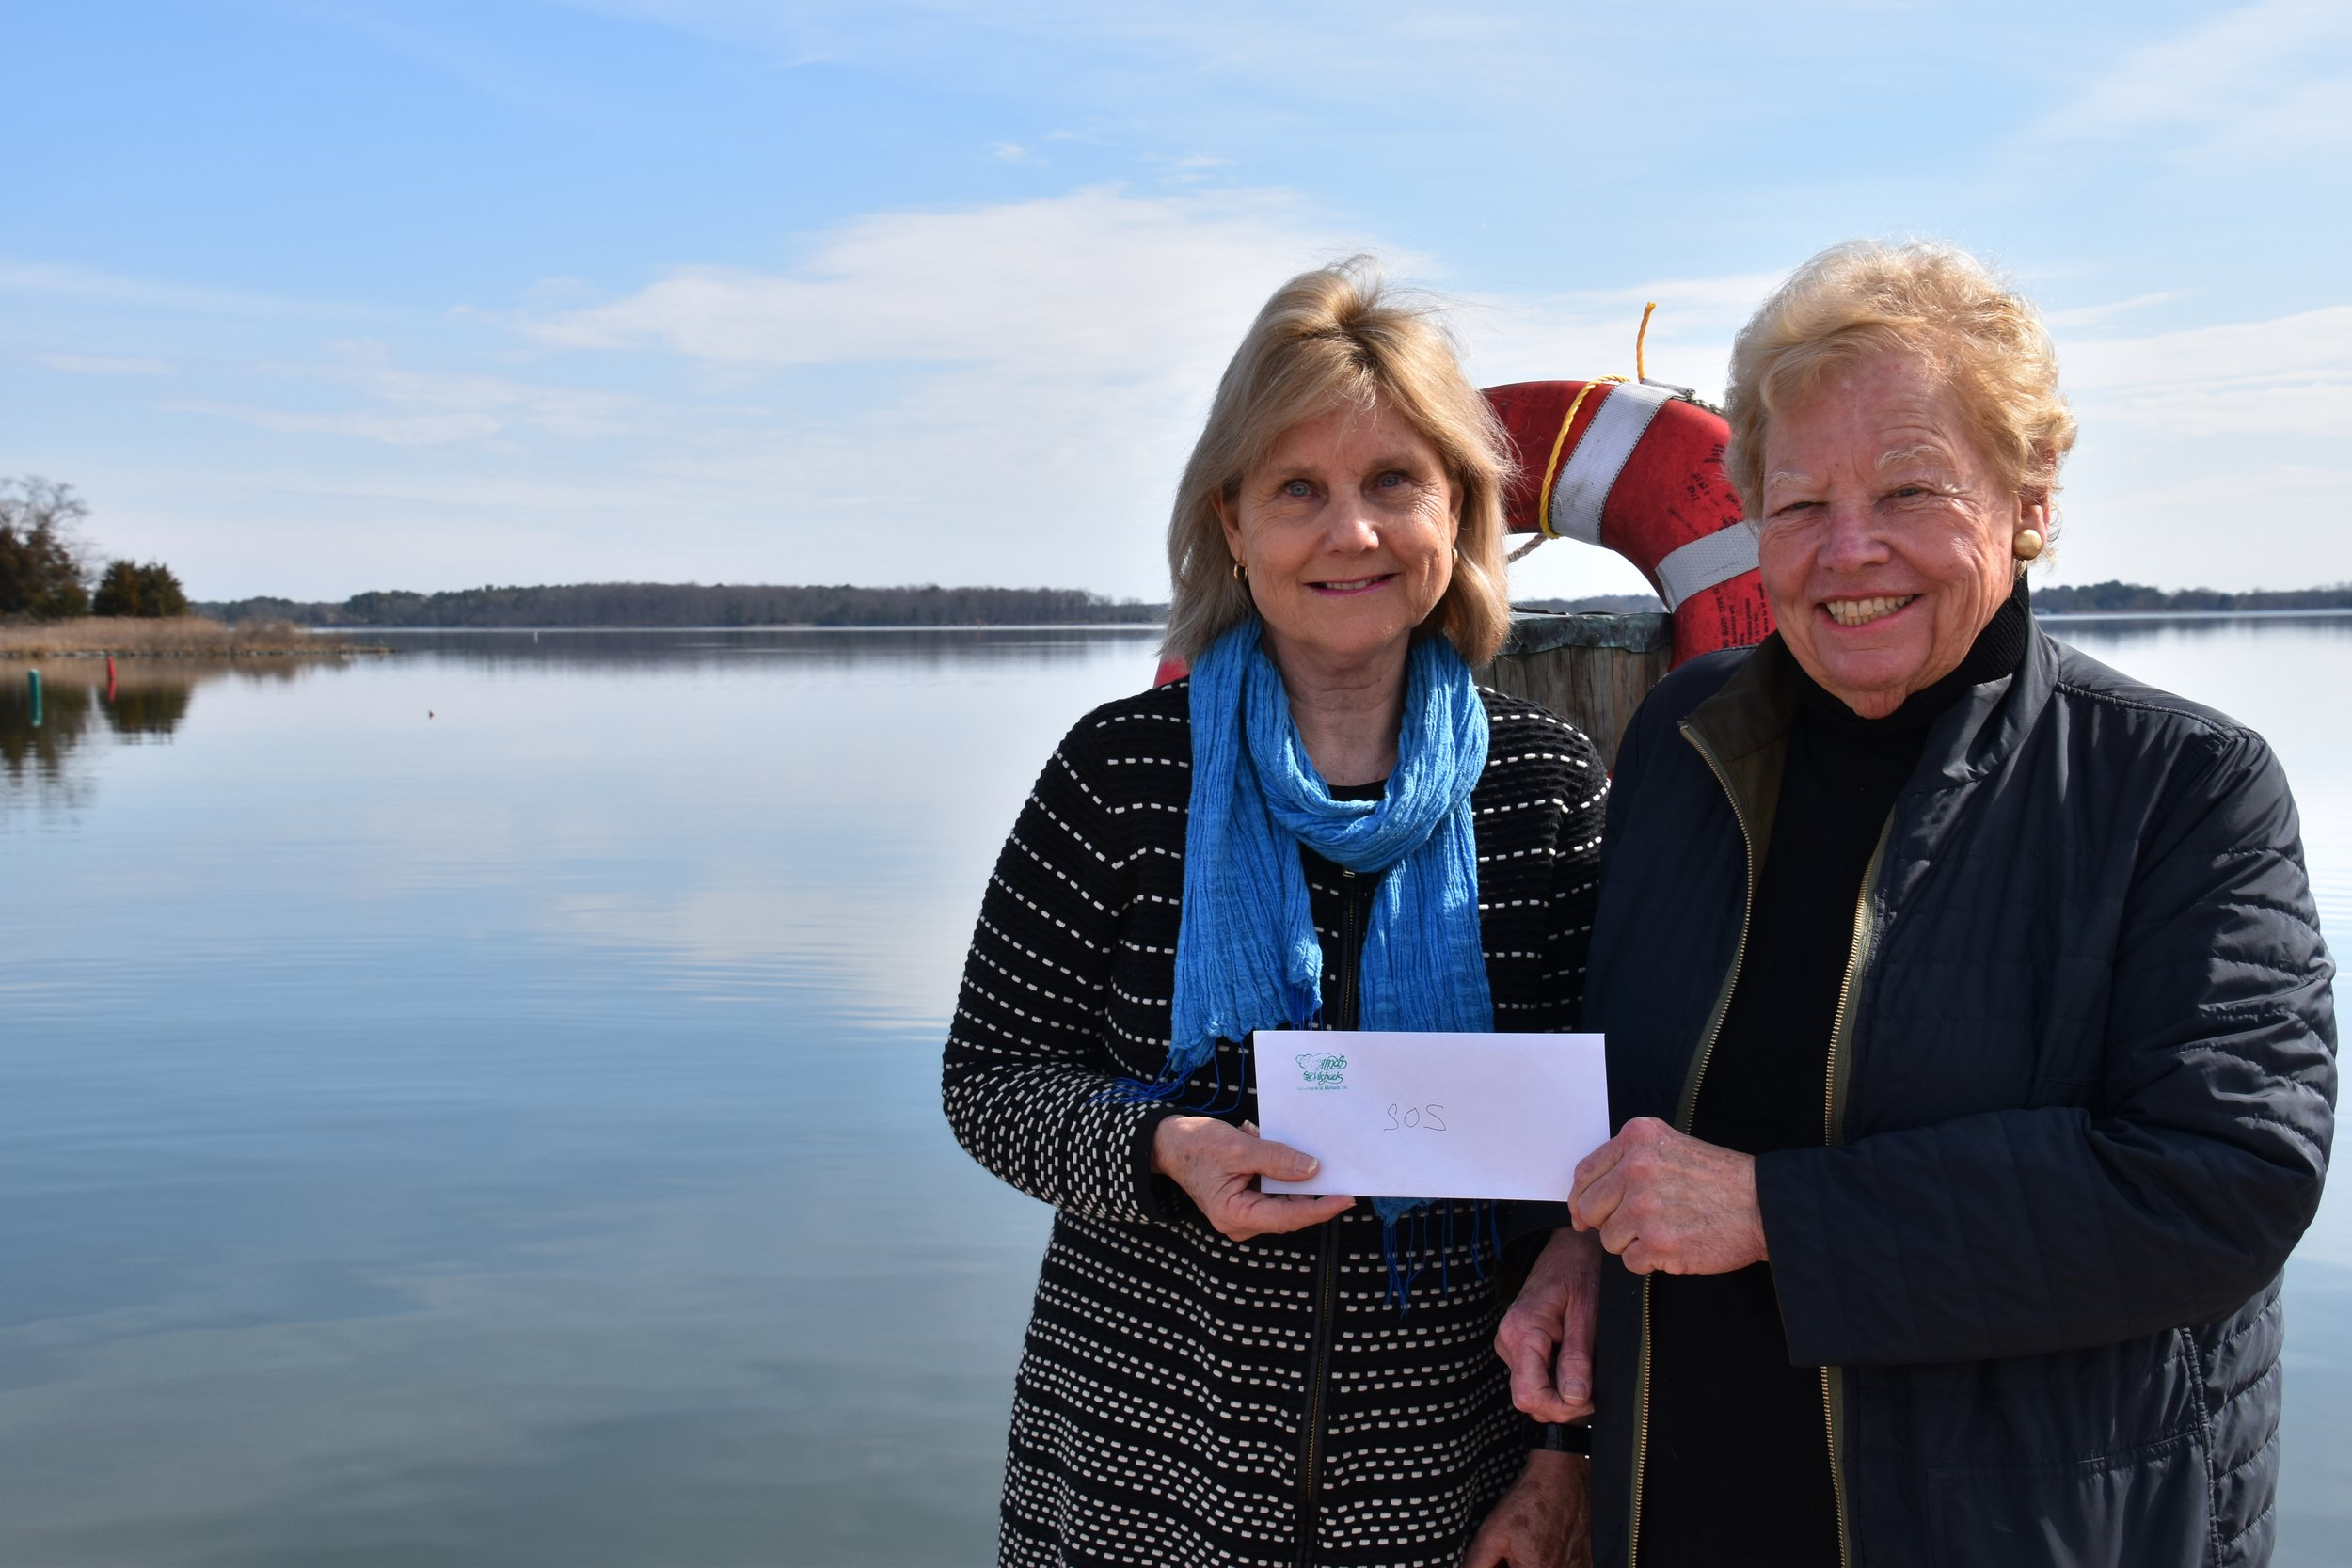 From left: Christmas in St. Michaels Treasurer Linda Seemans with SOS Sink or Swim Council President Libby Moose accepting a check from Christmas in St. Michaels in support of the children and adults served by SOS's free, two-week swimming lessons offered at Talbot County's community pools. To support a swimmer or to learn more, go to  sossinkorswim.org.